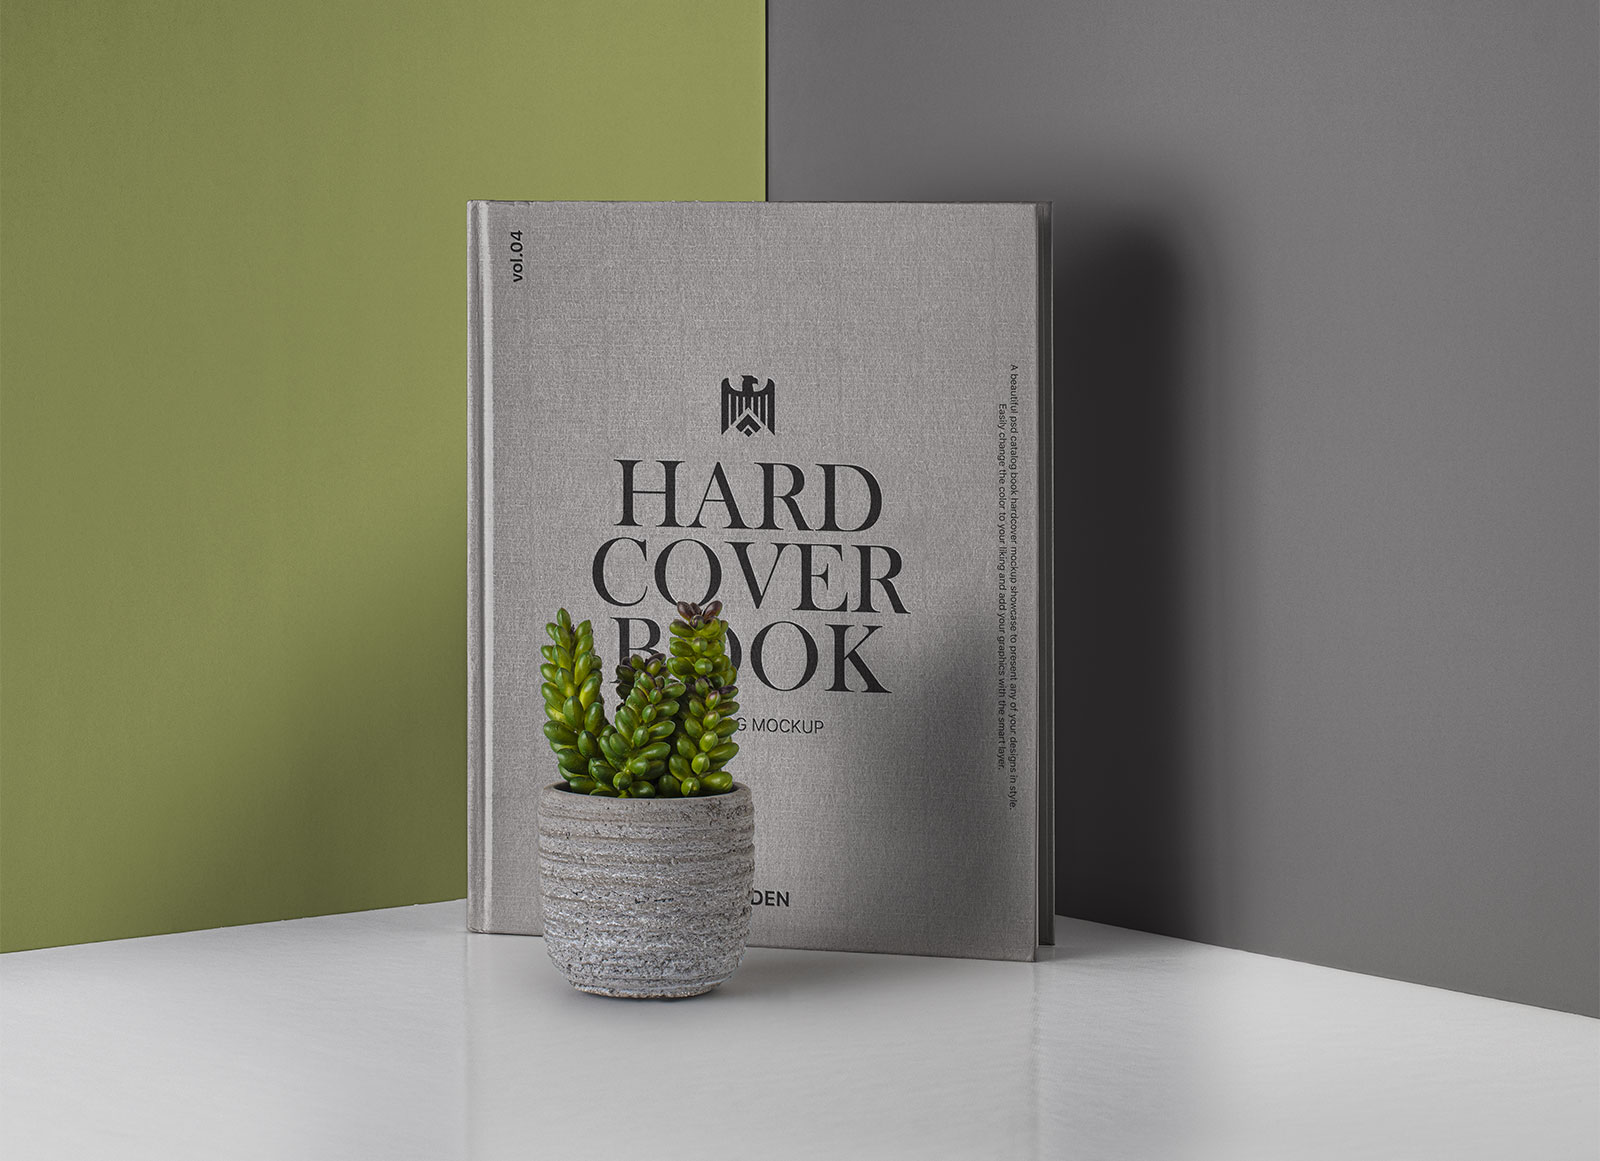 Free-Hardcover-Book-Catalog-Title-Mockup-PSD